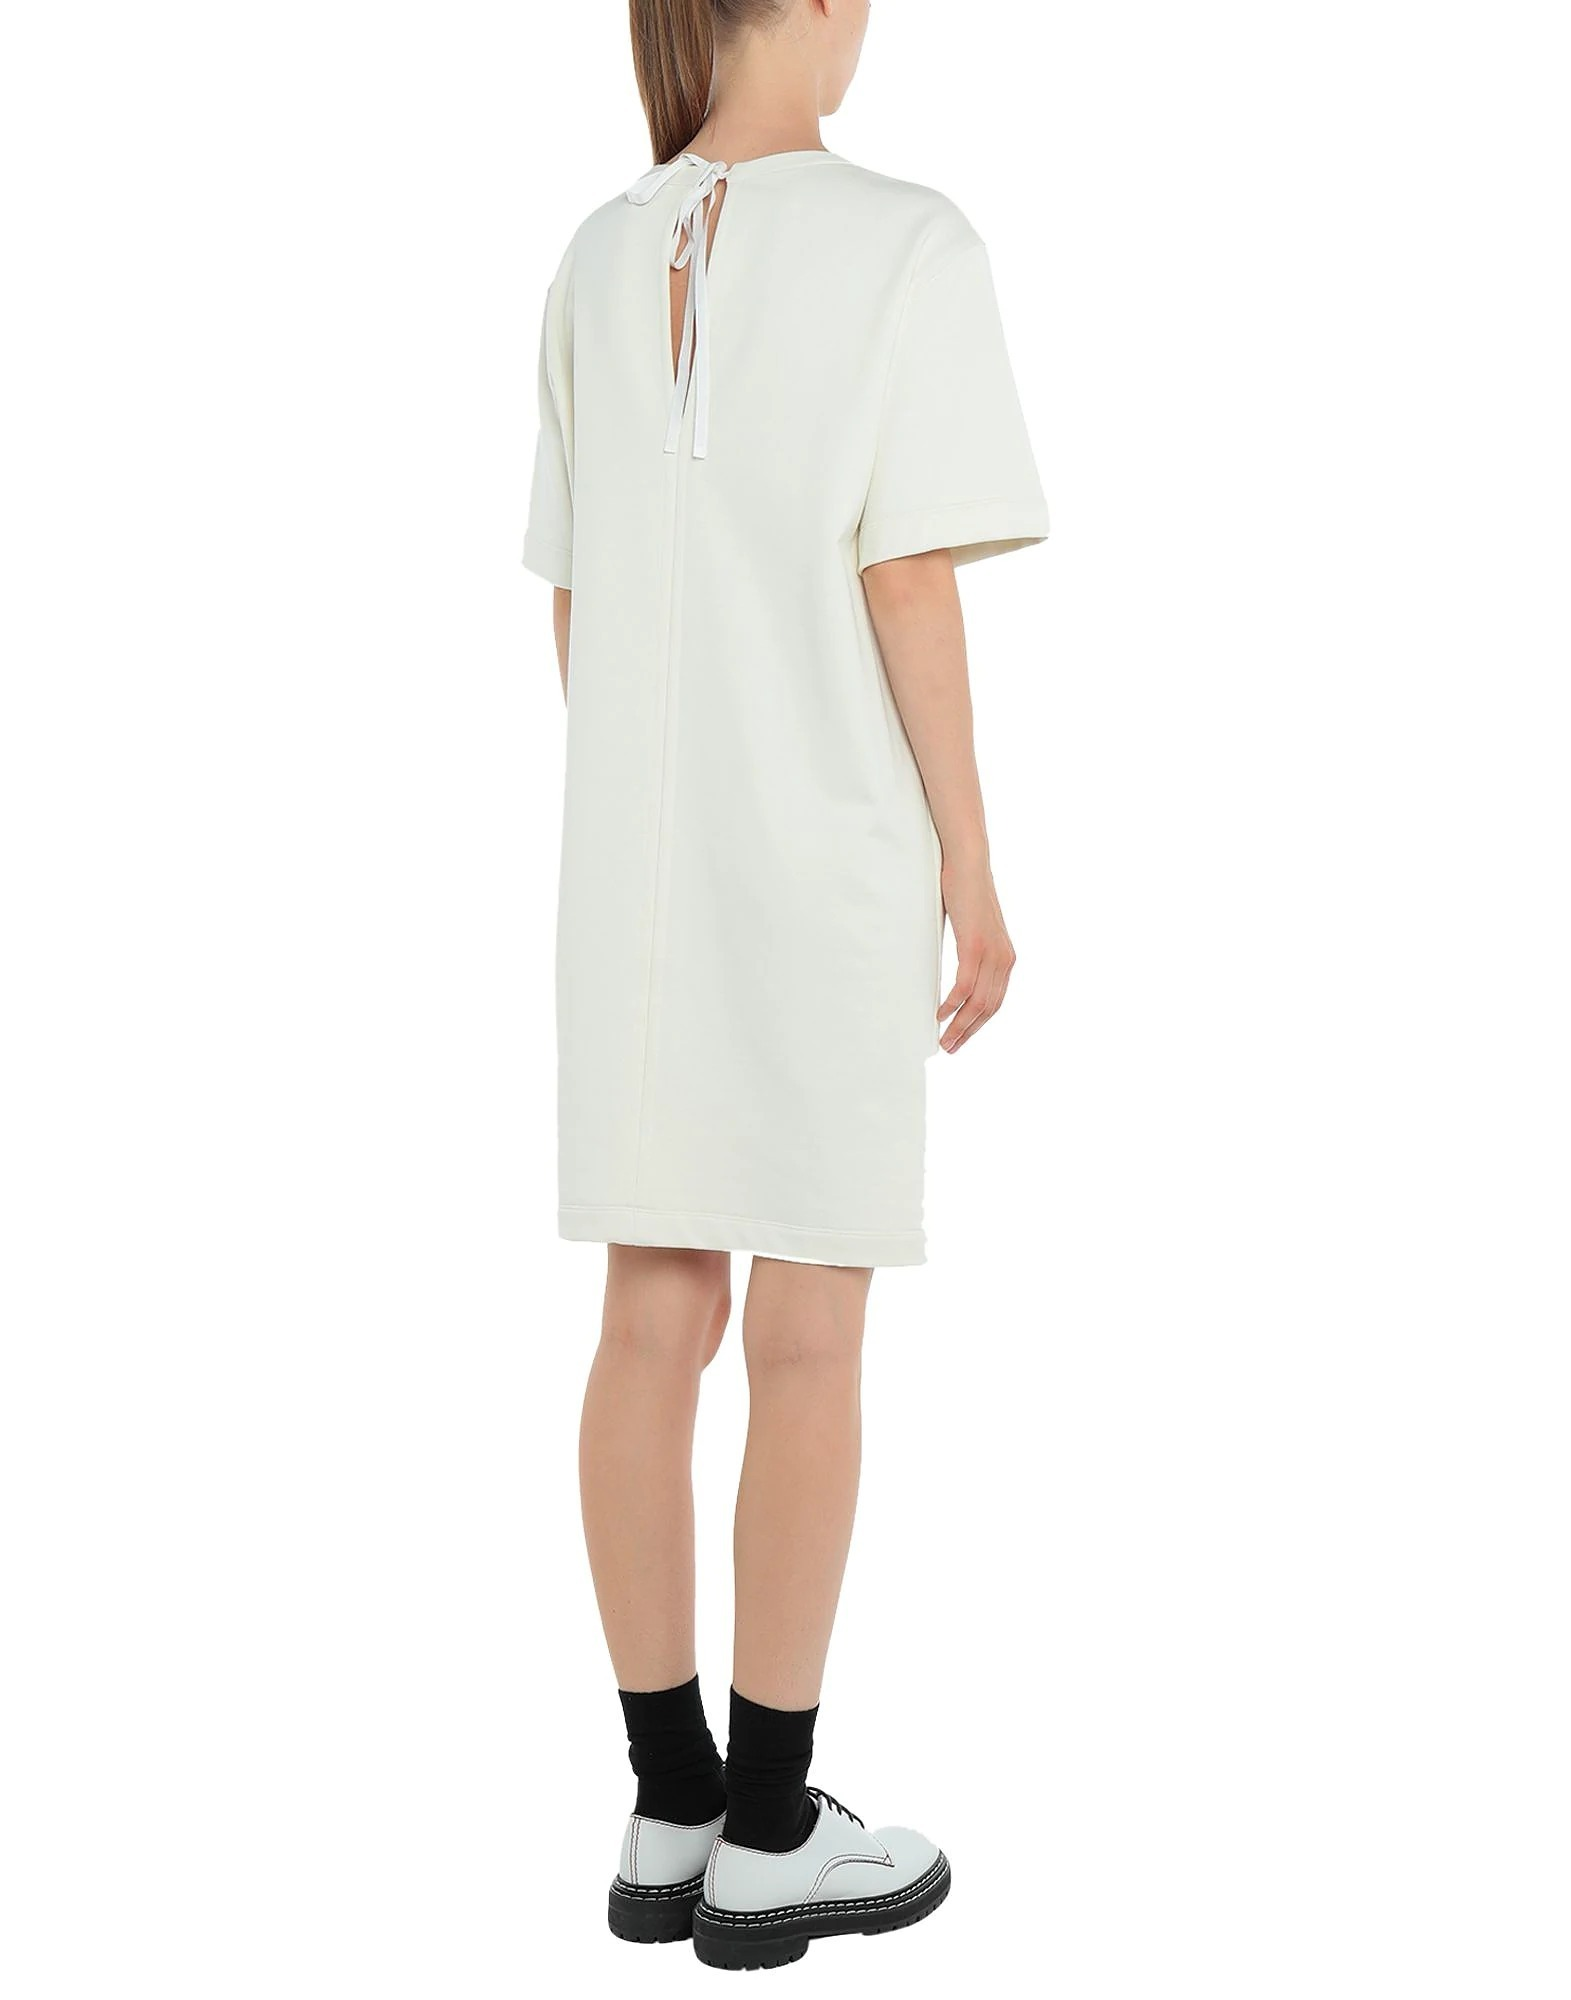 shop jil sander navy clothing